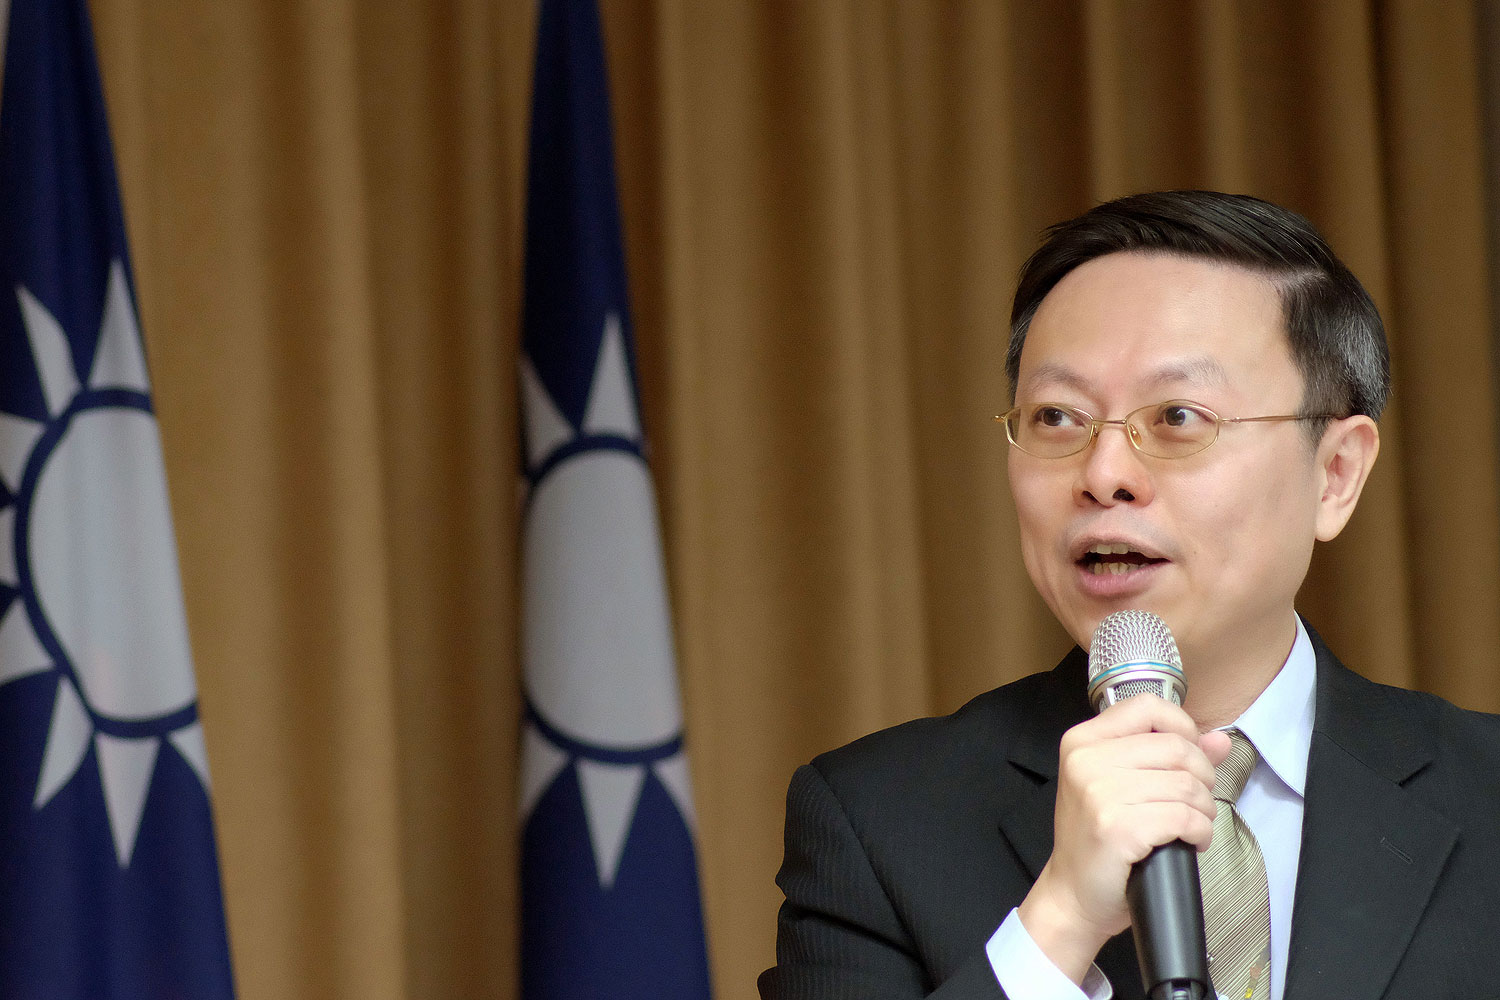 Wang Yu-chi, minister of Taiwan's Mainland Affairs Council, speaks during a press conference in Taipei in January